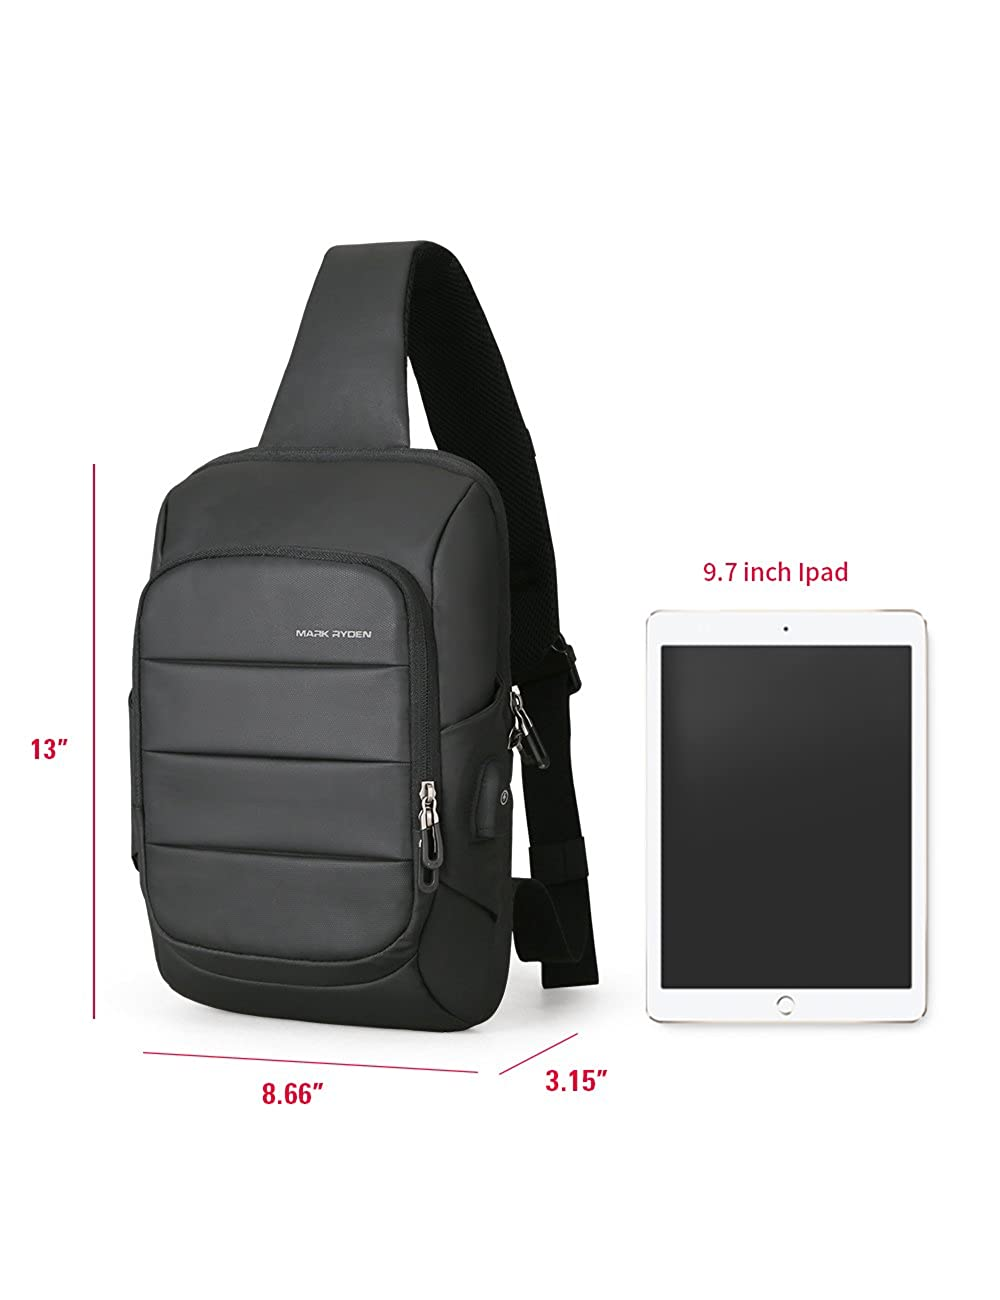 Anti Theft Sling Bag Shoulder Chest Cross Body Backpack Lightweight Casual Daypack for 11 inch ipad pro